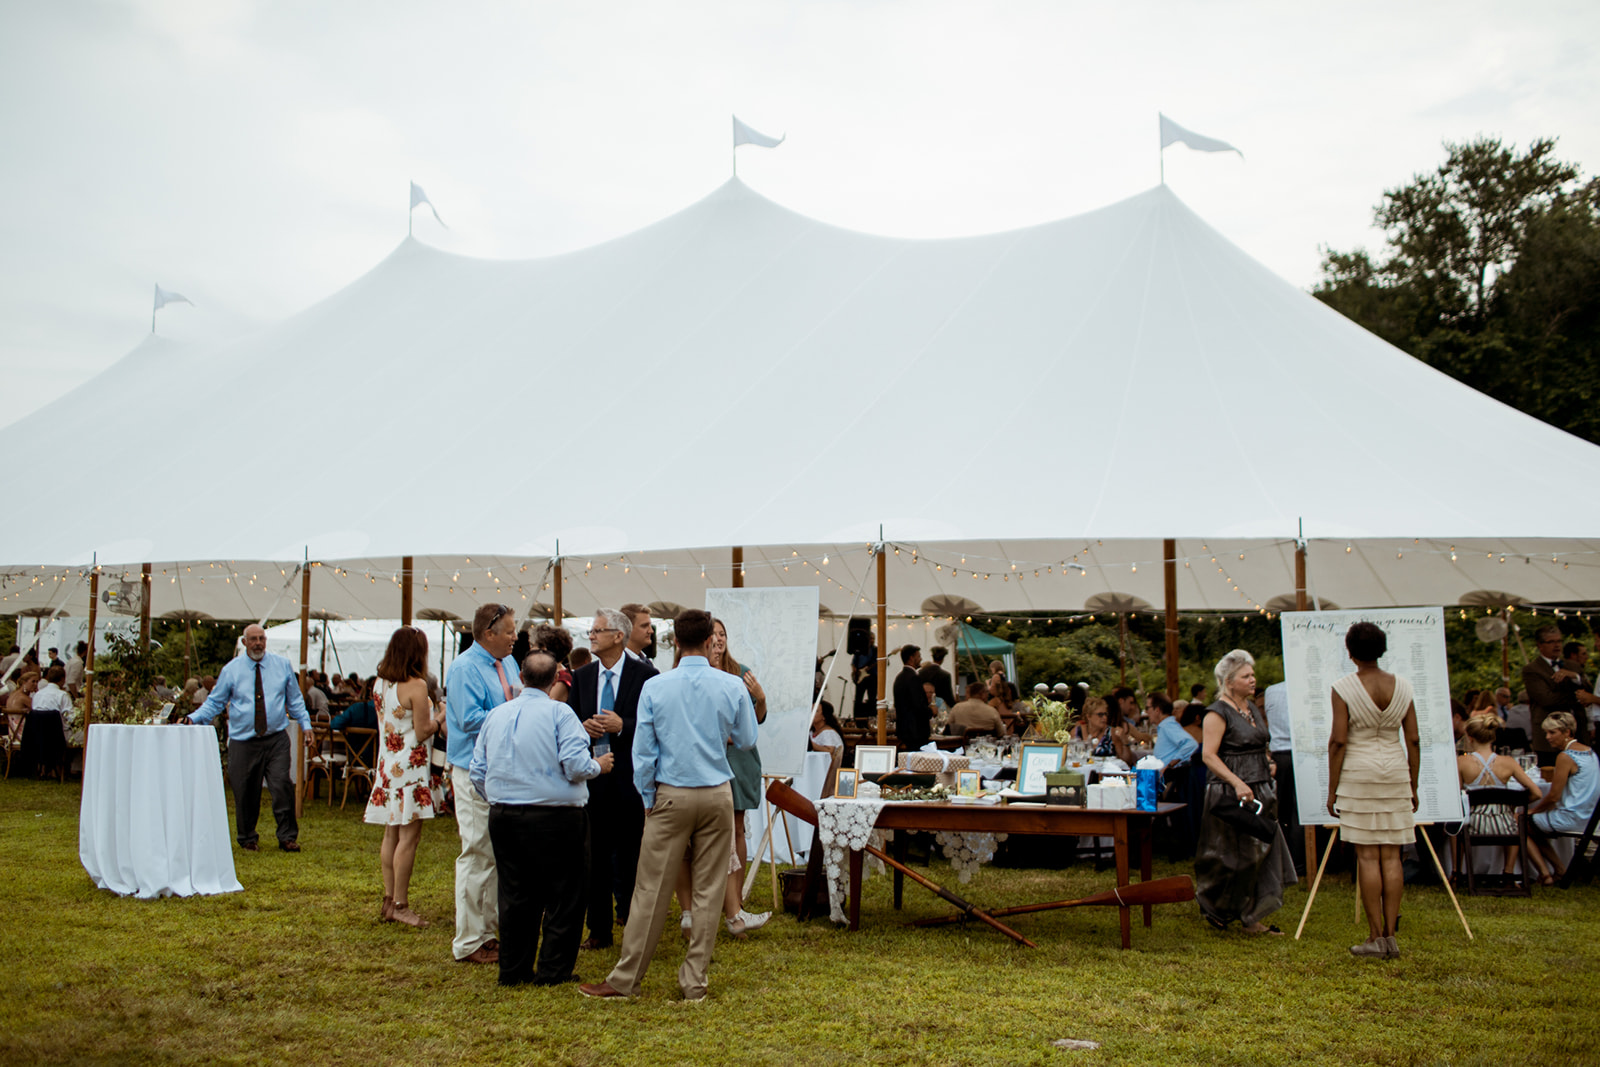 Sperry Tented wedding in Chester, Connecticut - Pearl Weddings & Events